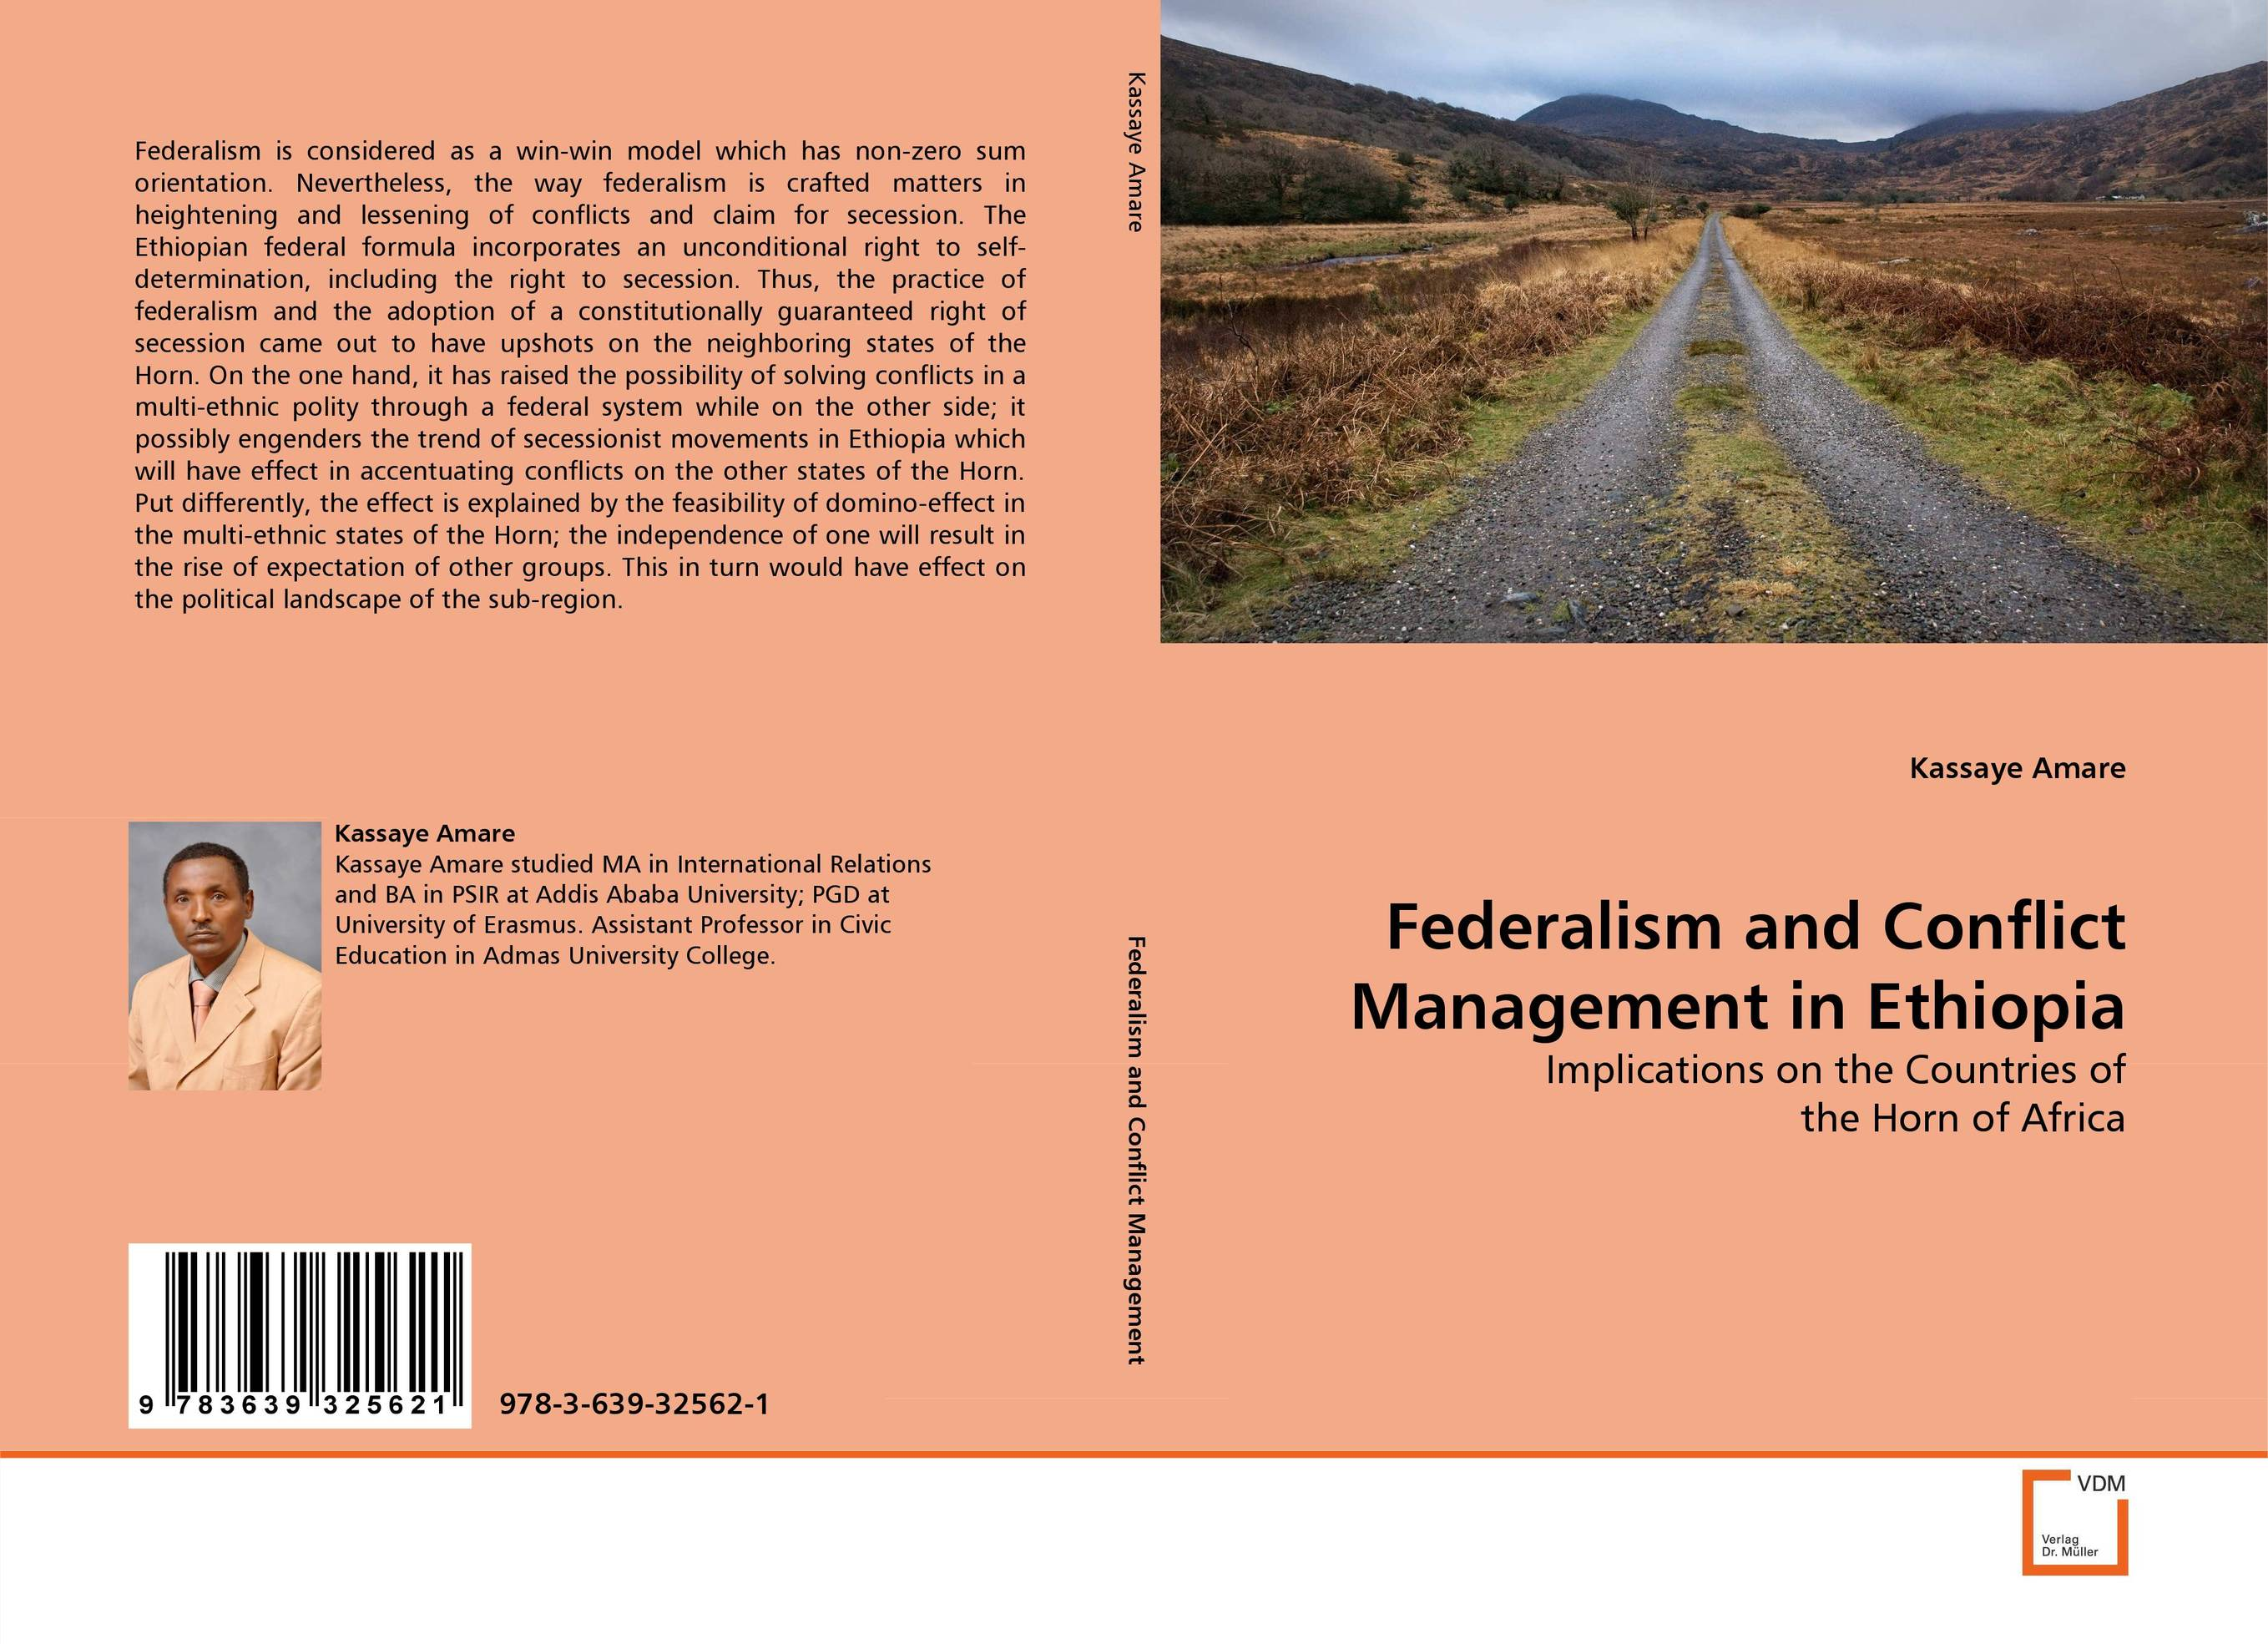 Federalism and Conflict Management in Ethiopia conflict of family laws in ethiopia